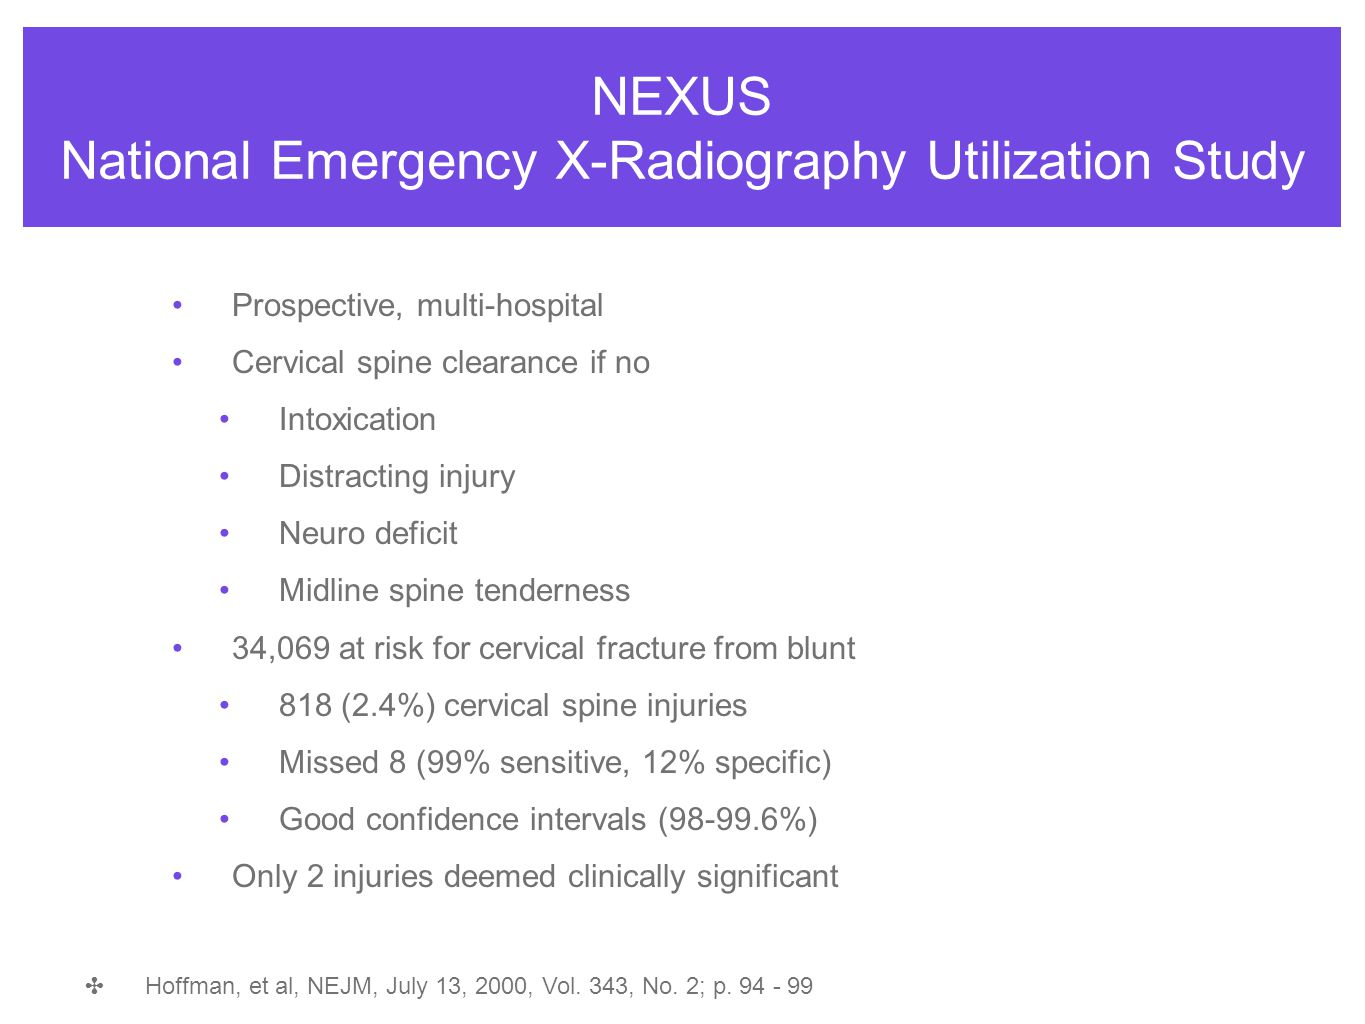 NEXUS National Emergency X-Radiography Utilization Study Prospective, multi-hospital Cervical spine clearance if no Intoxication Distracting injury Ne